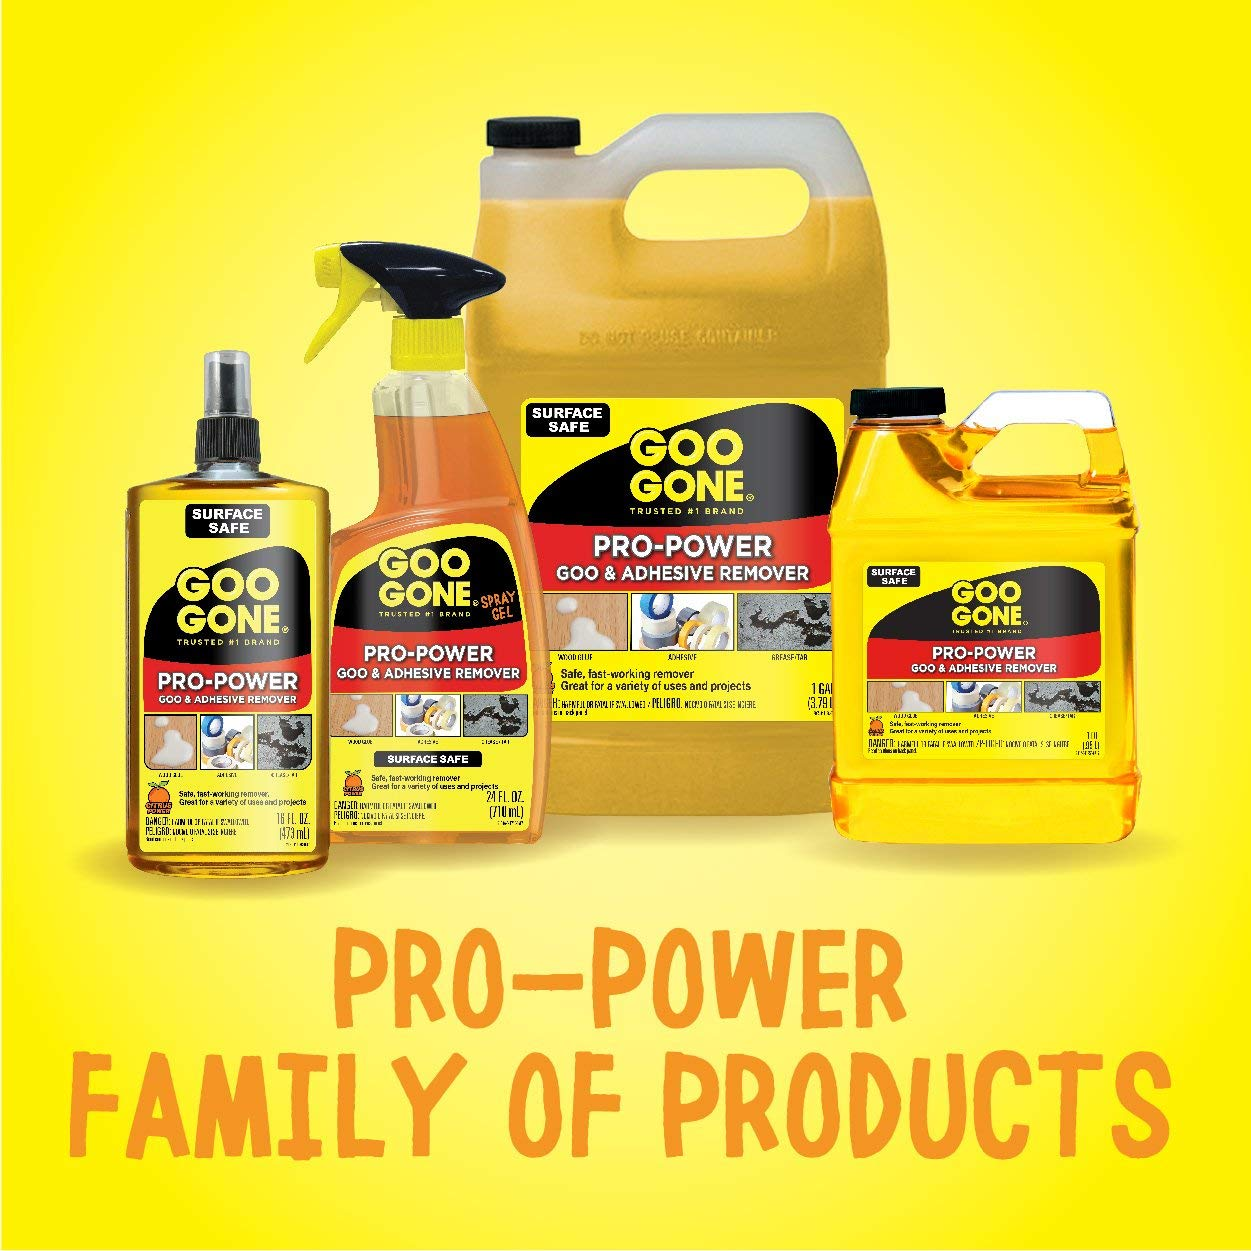 Goo Gone IUGYH Pro-Power Spray Gel - 24 Ounce - Surface Safe, Great Cleaner, No Harsh Odors, Removes Stickers, Can Be Used On Tools 2 Pack by Goo Gone (Image #6)